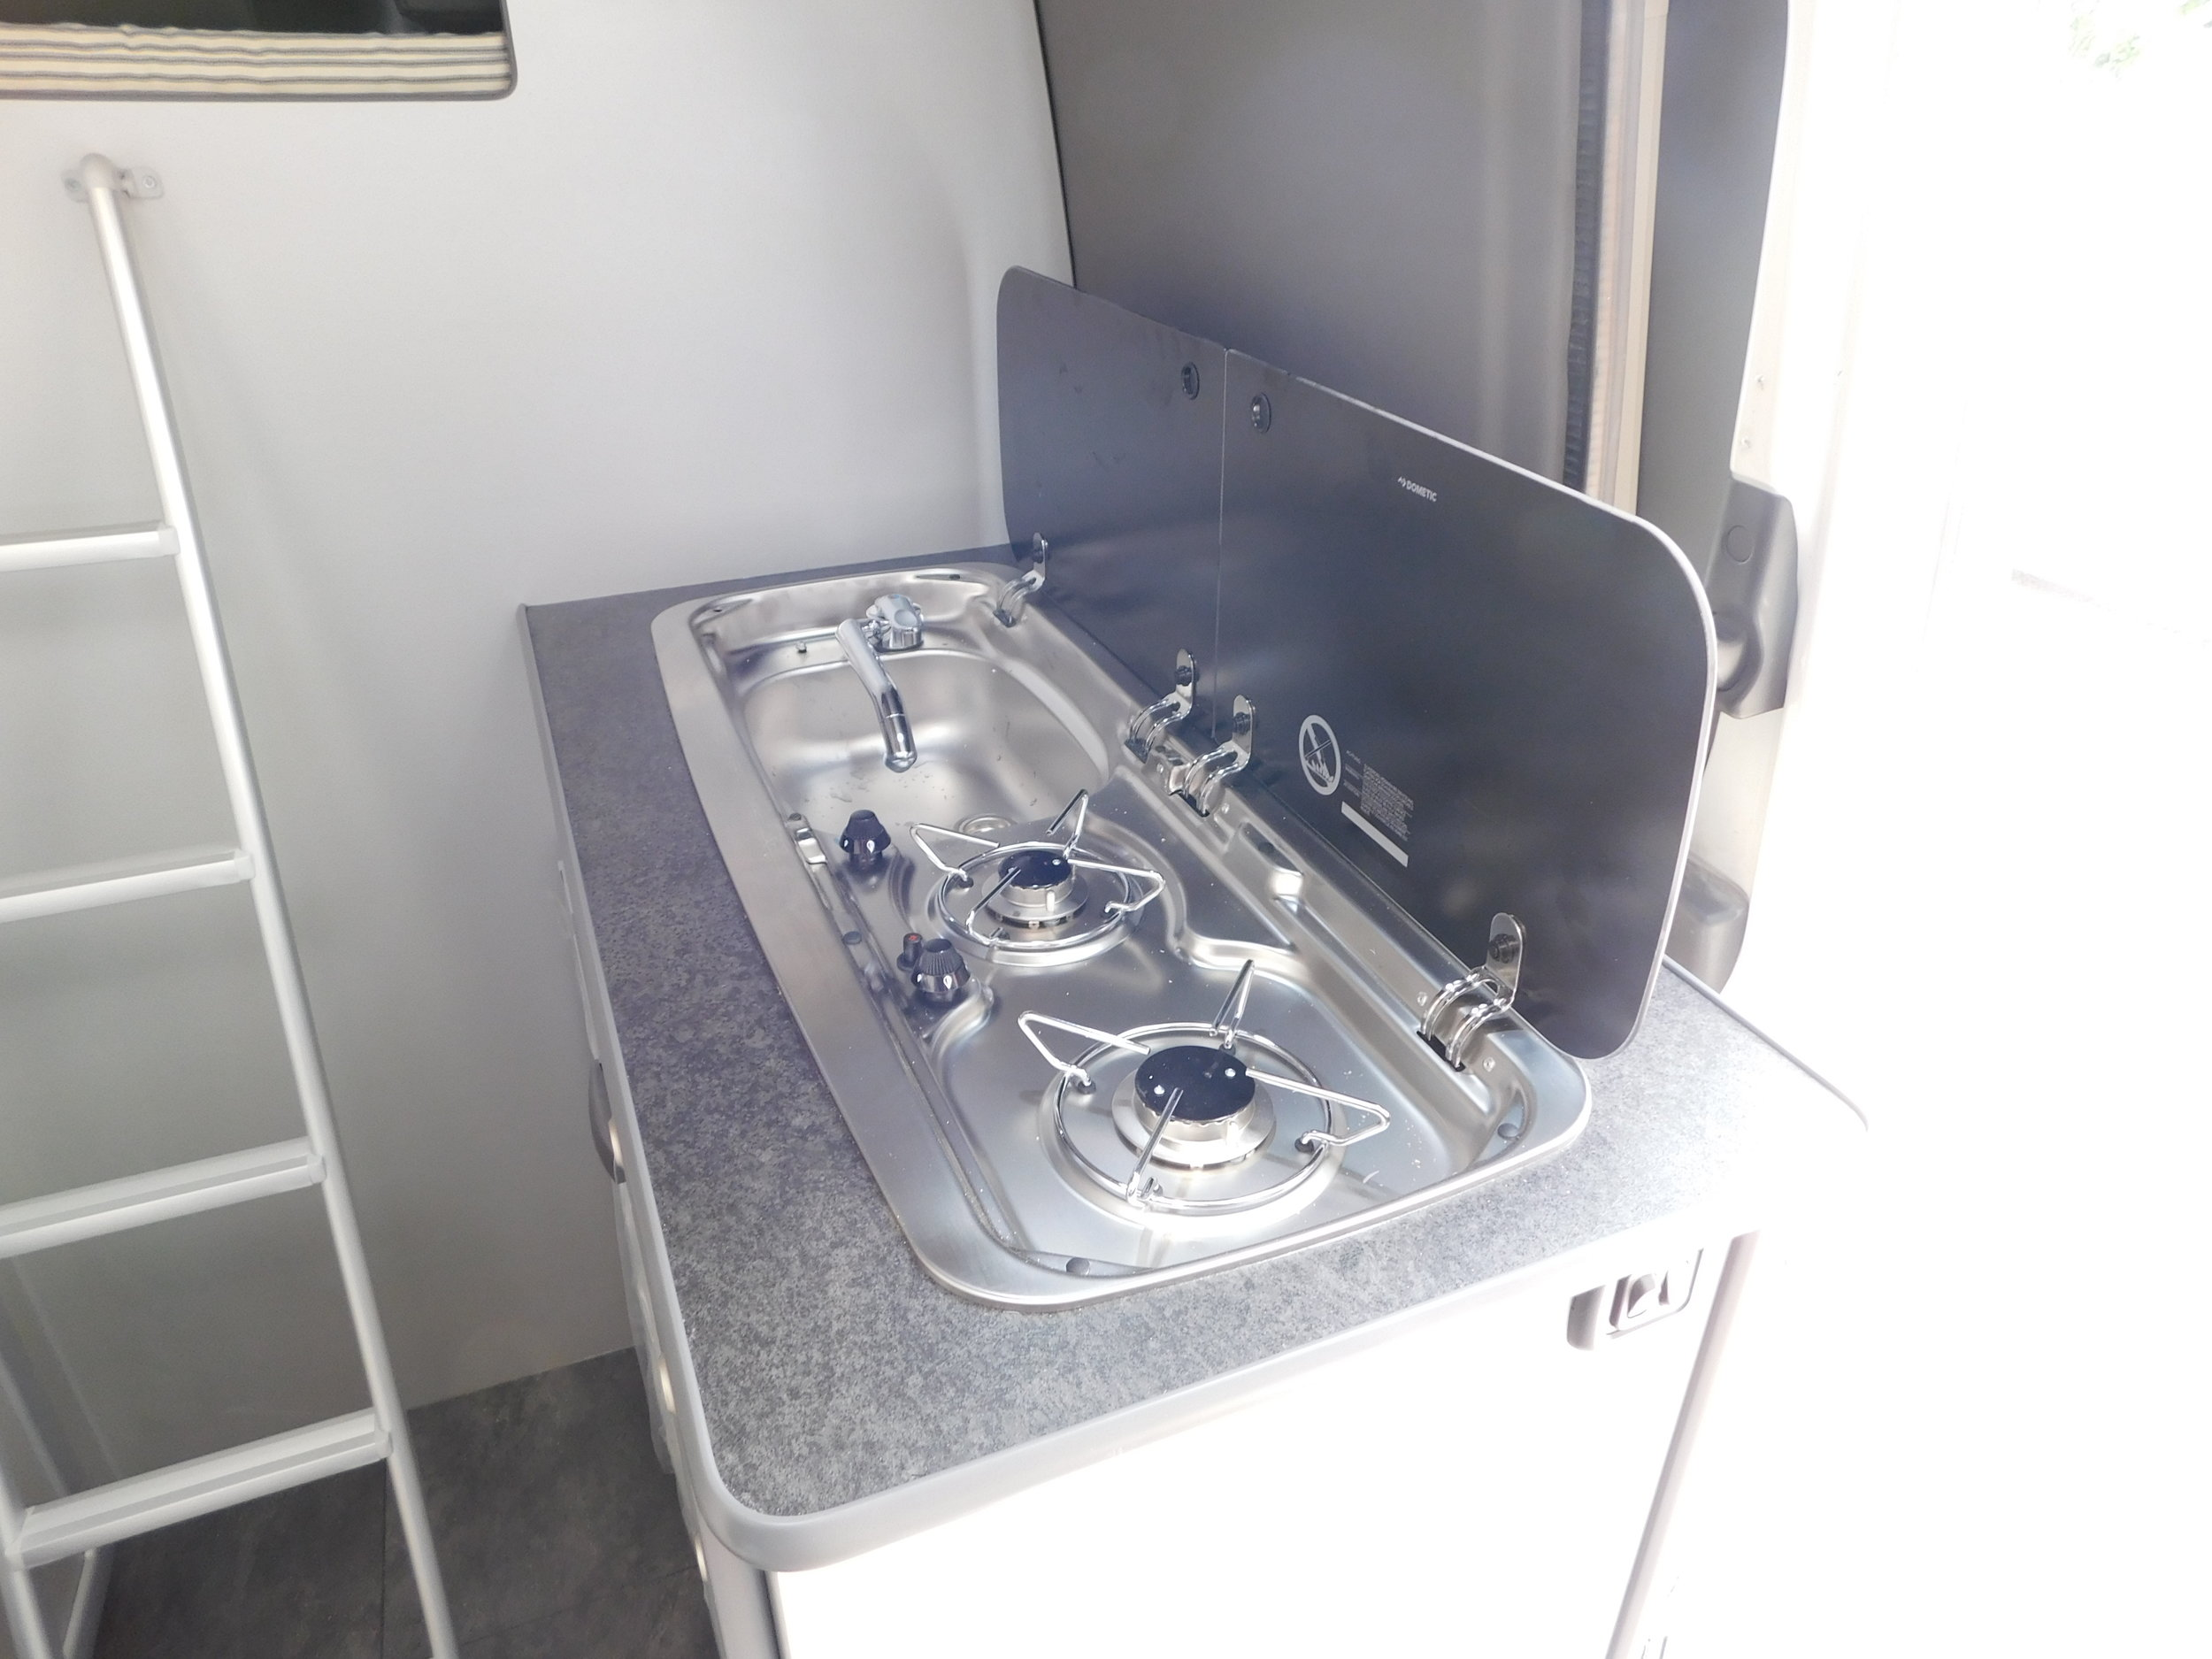 2 Hob gas stove + sink combination and a 12V fridge